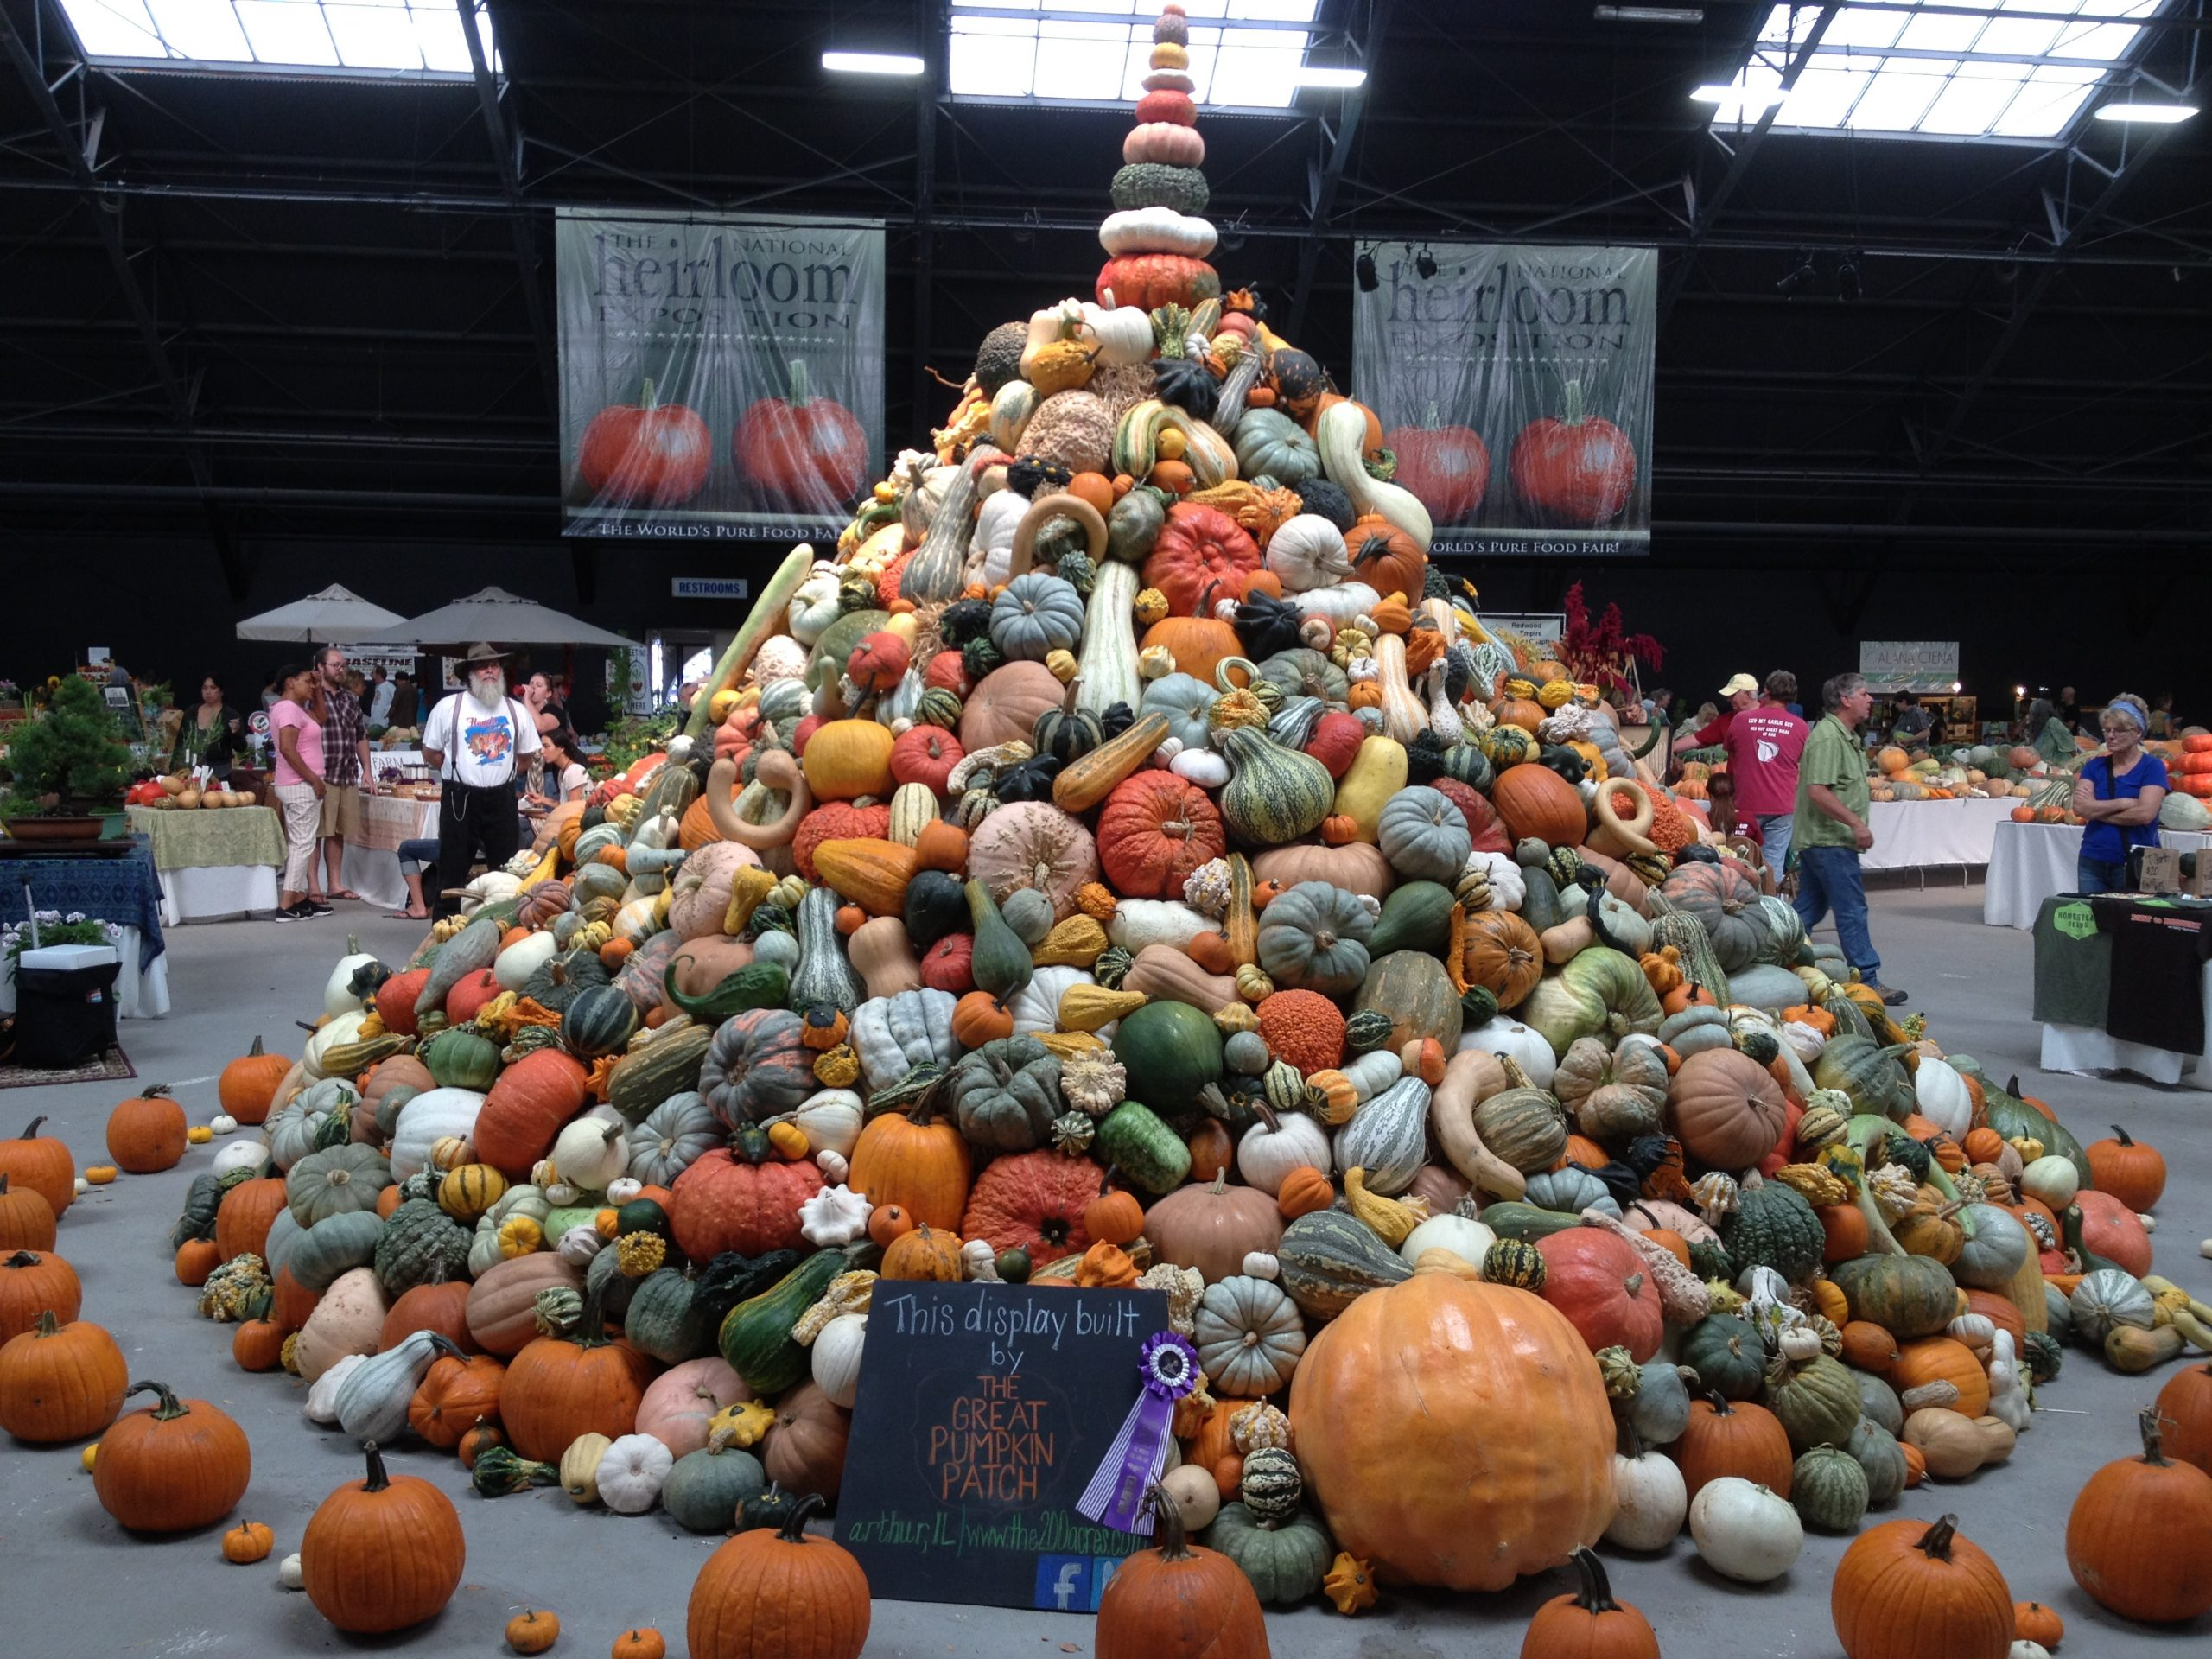 Pile of colorful squash